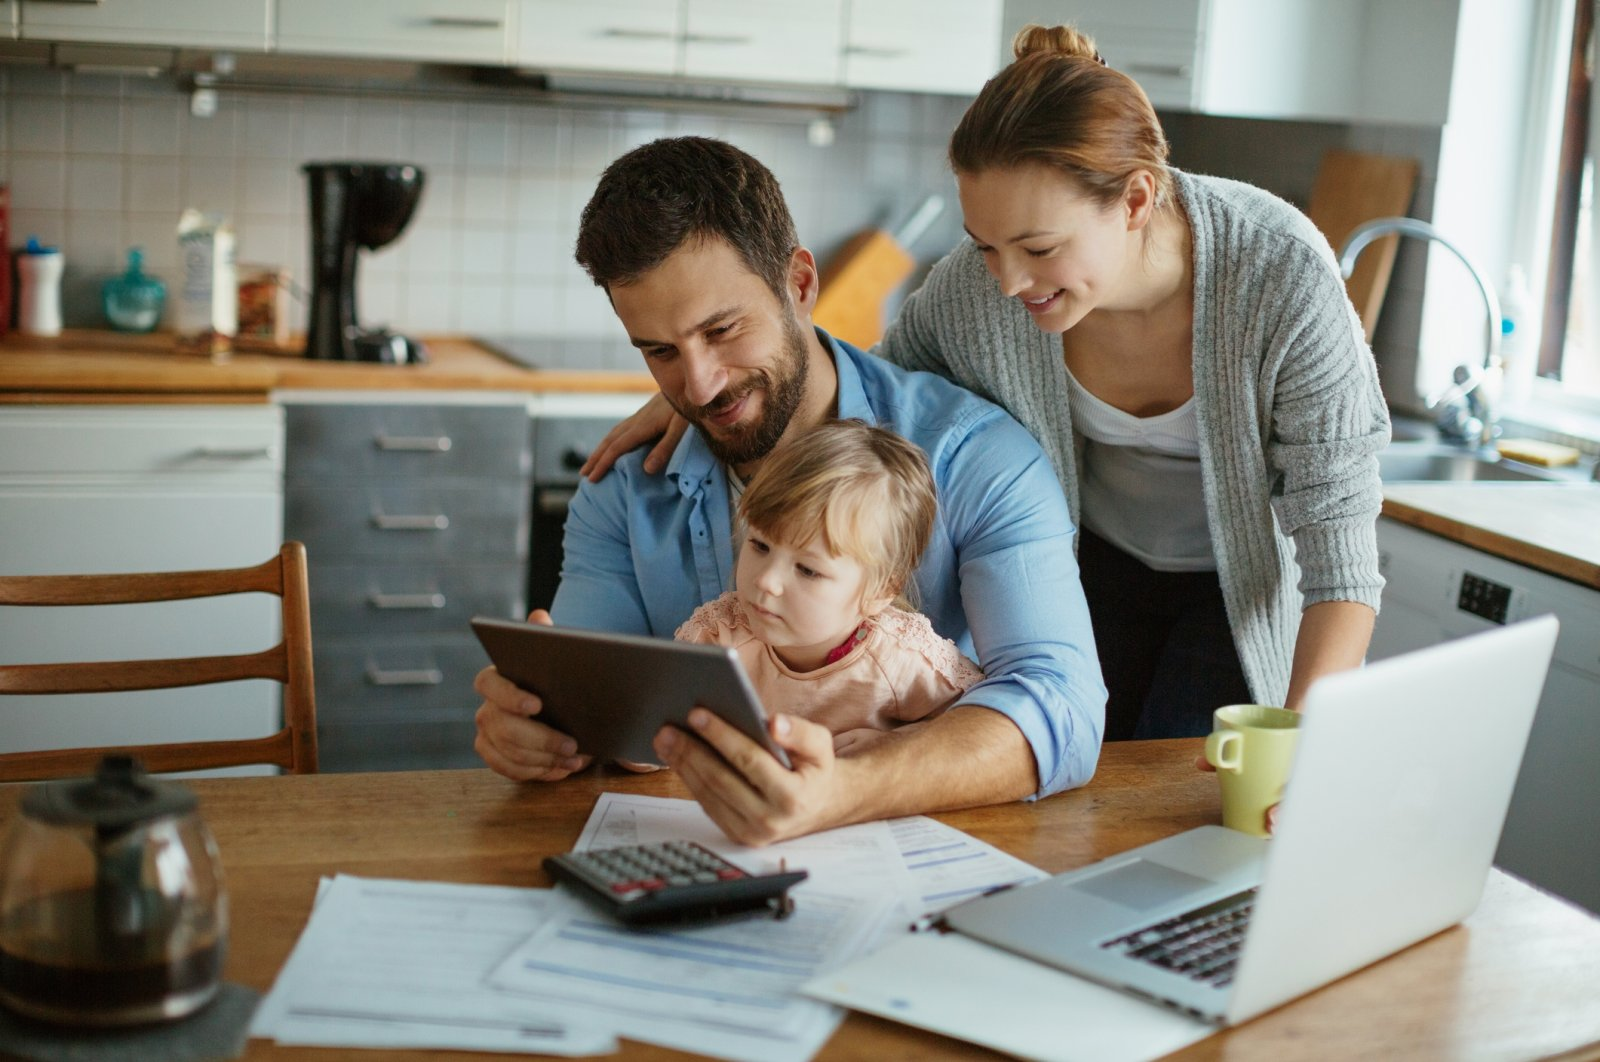 A recent study showed that companies can save up to $11,000 a year with a remote working model. (iStock Photo)